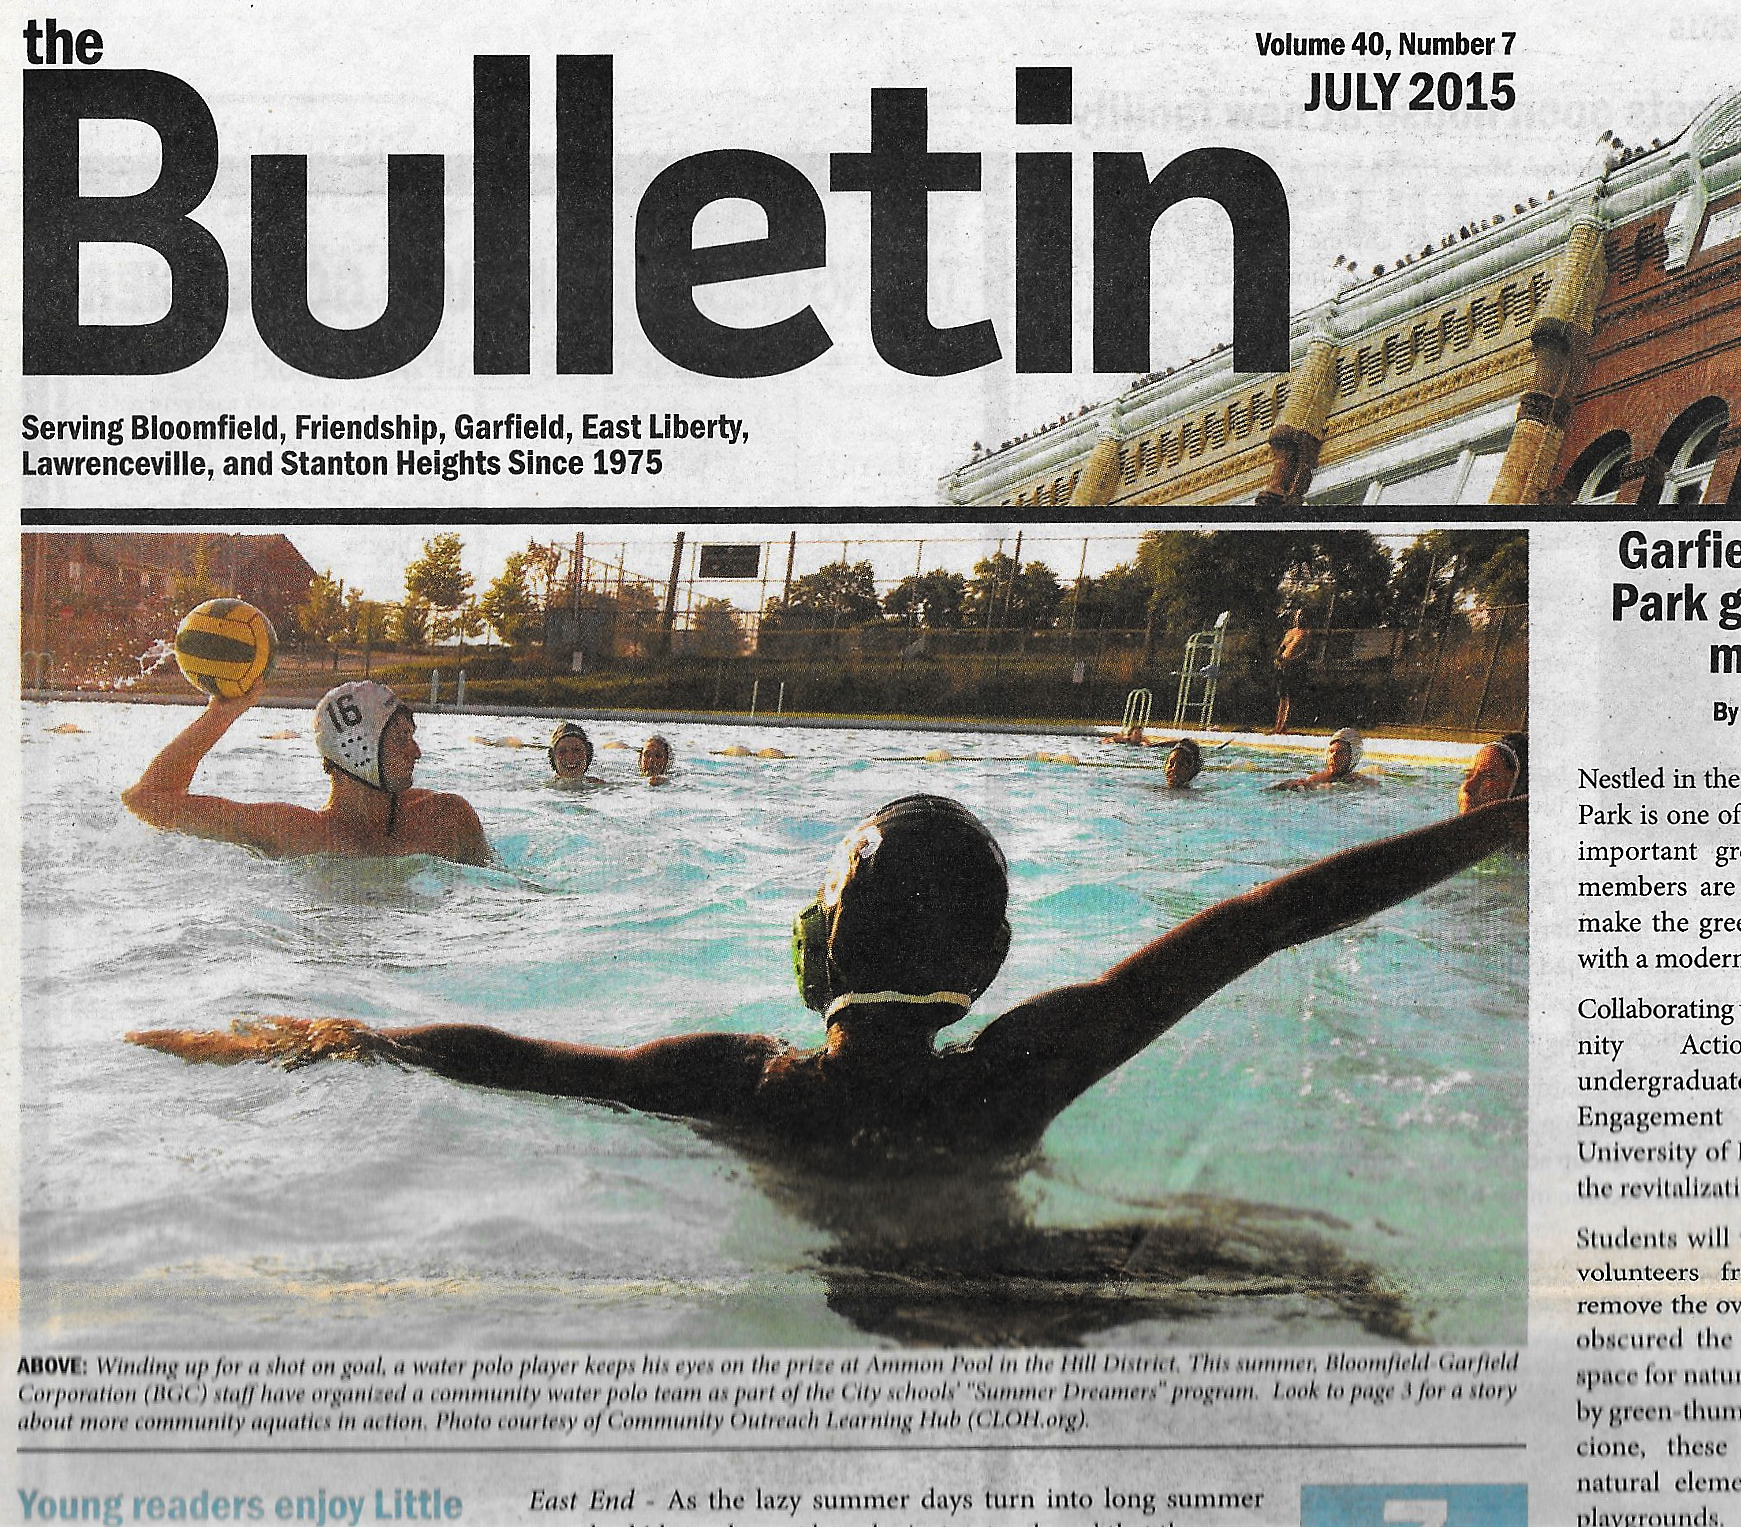 Water polo on cover of BGC Bulletin